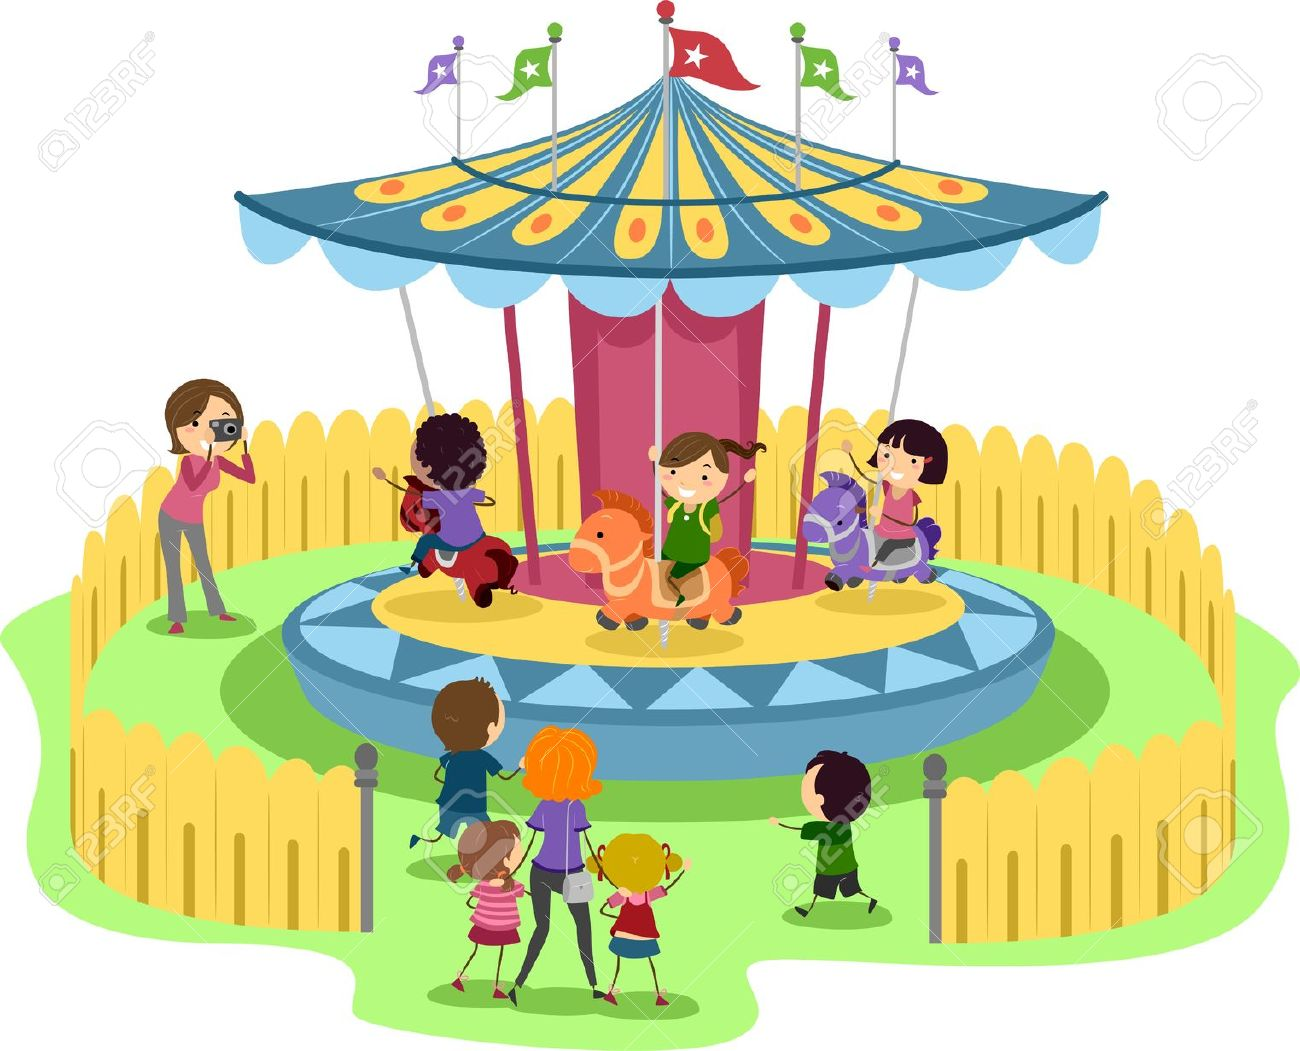 Illustration Of Kids Riding A Merry-Go-Round Stock Photo, Picture ...